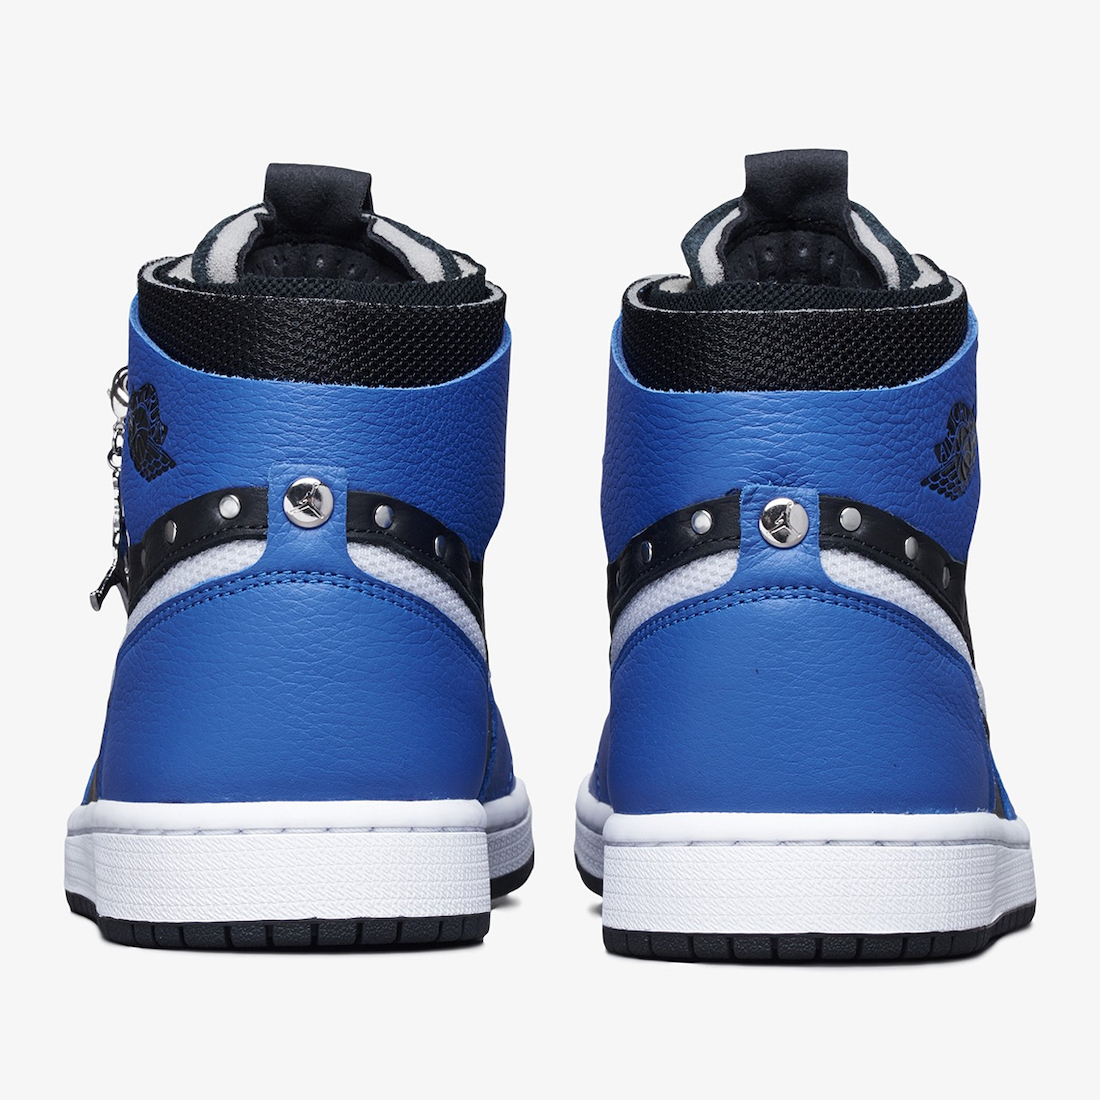 Air-Jordan-1-Zoom-Comfort-SE-Sisterhood-Rear-View